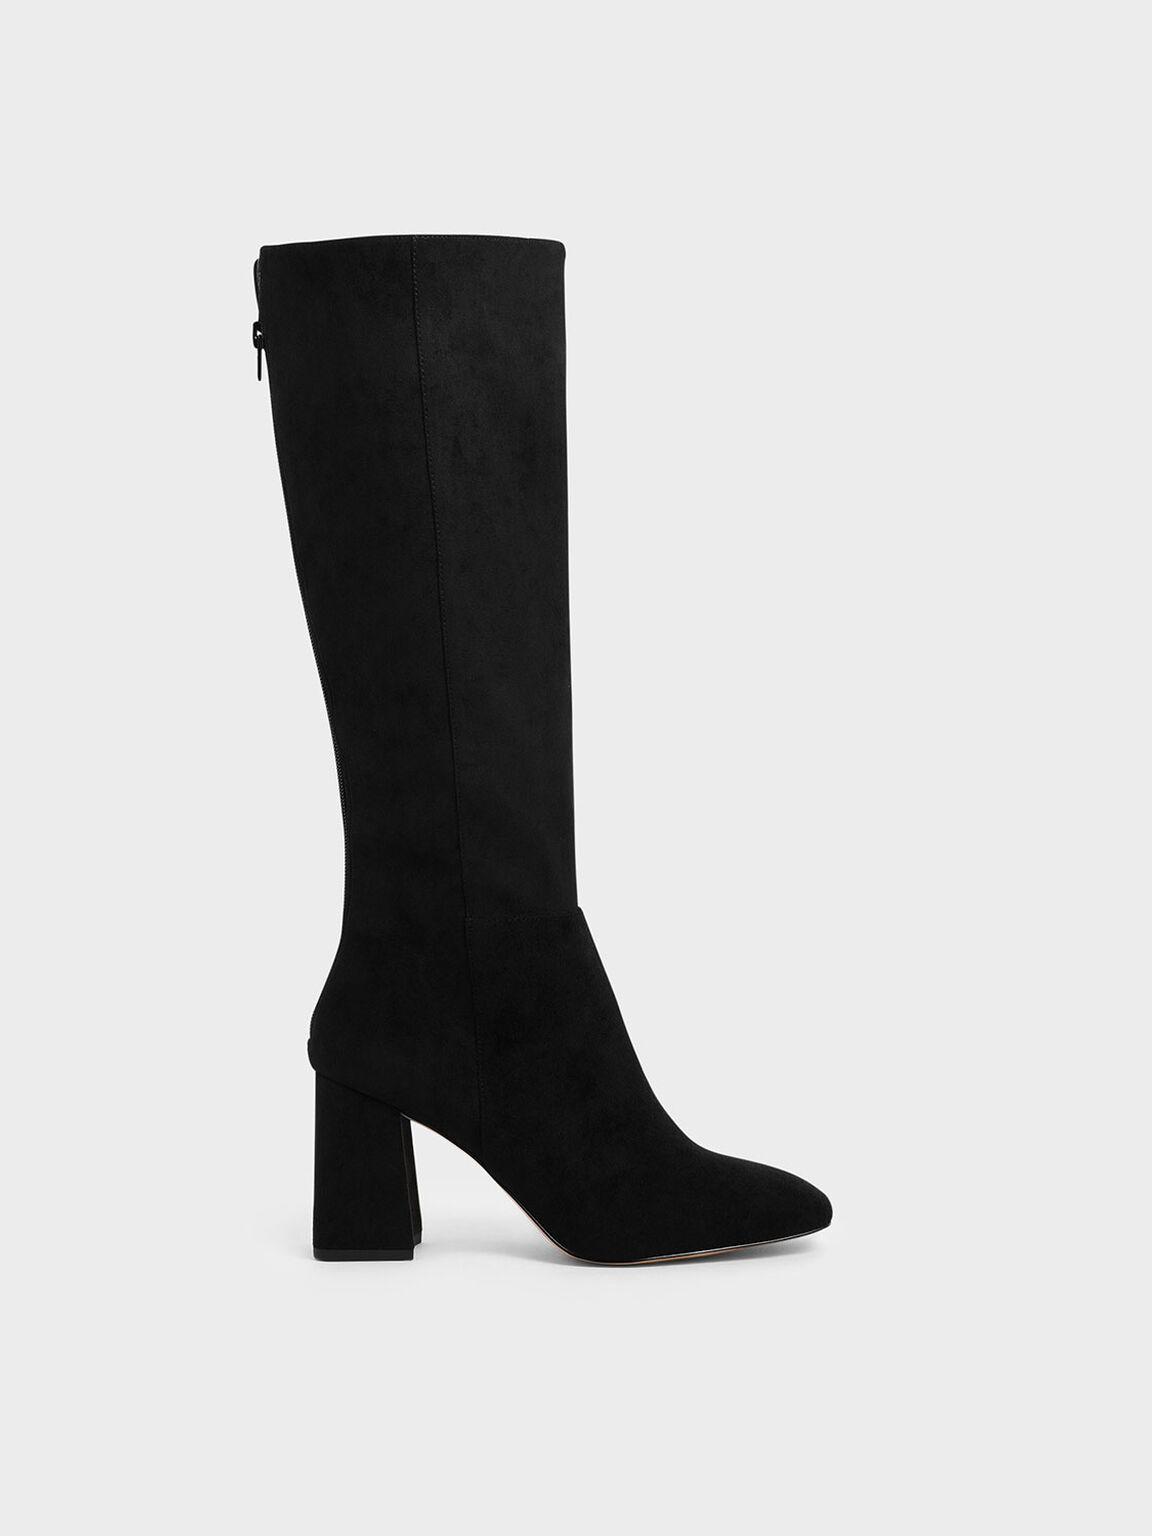 Textured Knee High Block Heel Boots, Black, hi-res